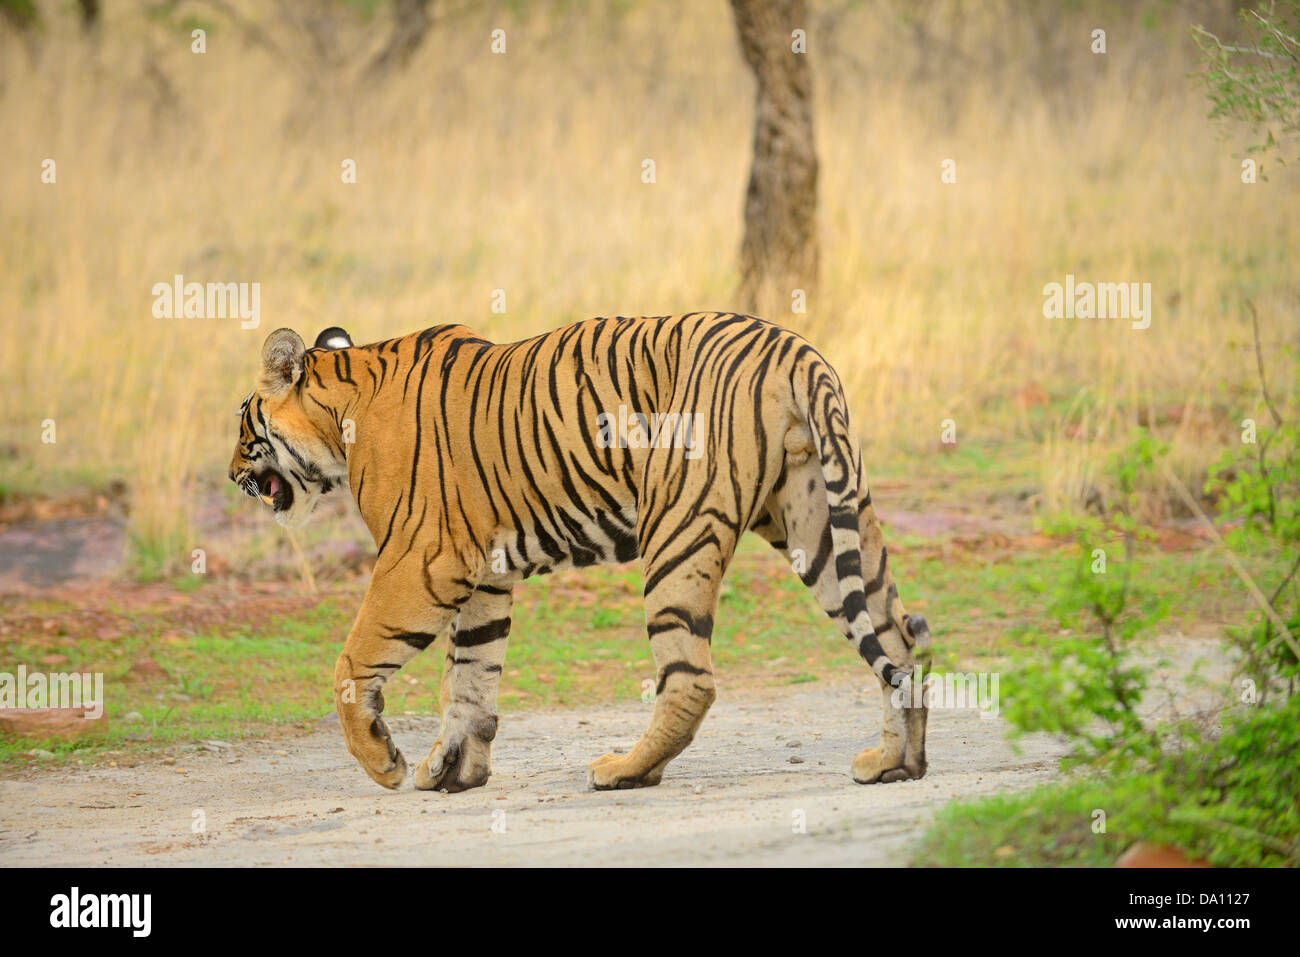 Wild tiger walking on a forest path in the green forests of Ranthambhore during monsoons Stock Photo